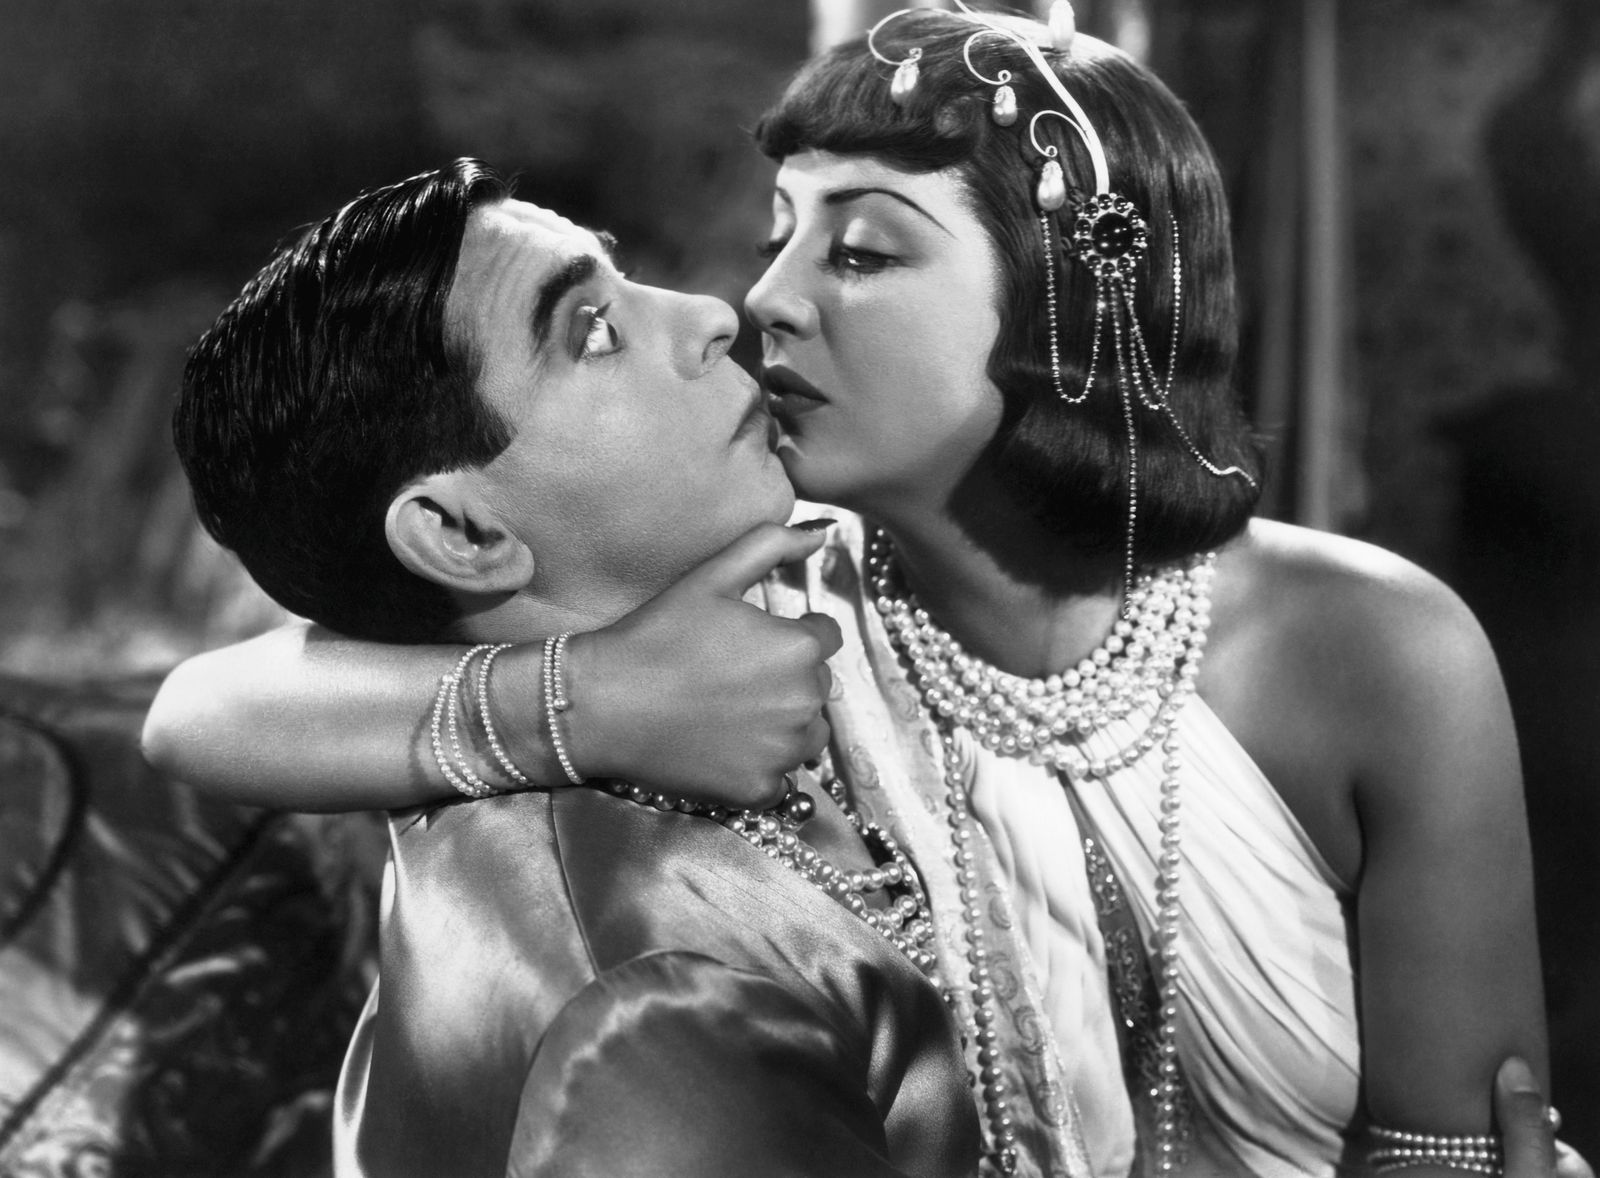 ALI BABA GOES TO TOWN, Eddie Cantor, Gypsy Rose Lee, (aka Louise Hovick), 1937, TM and copyright ©20